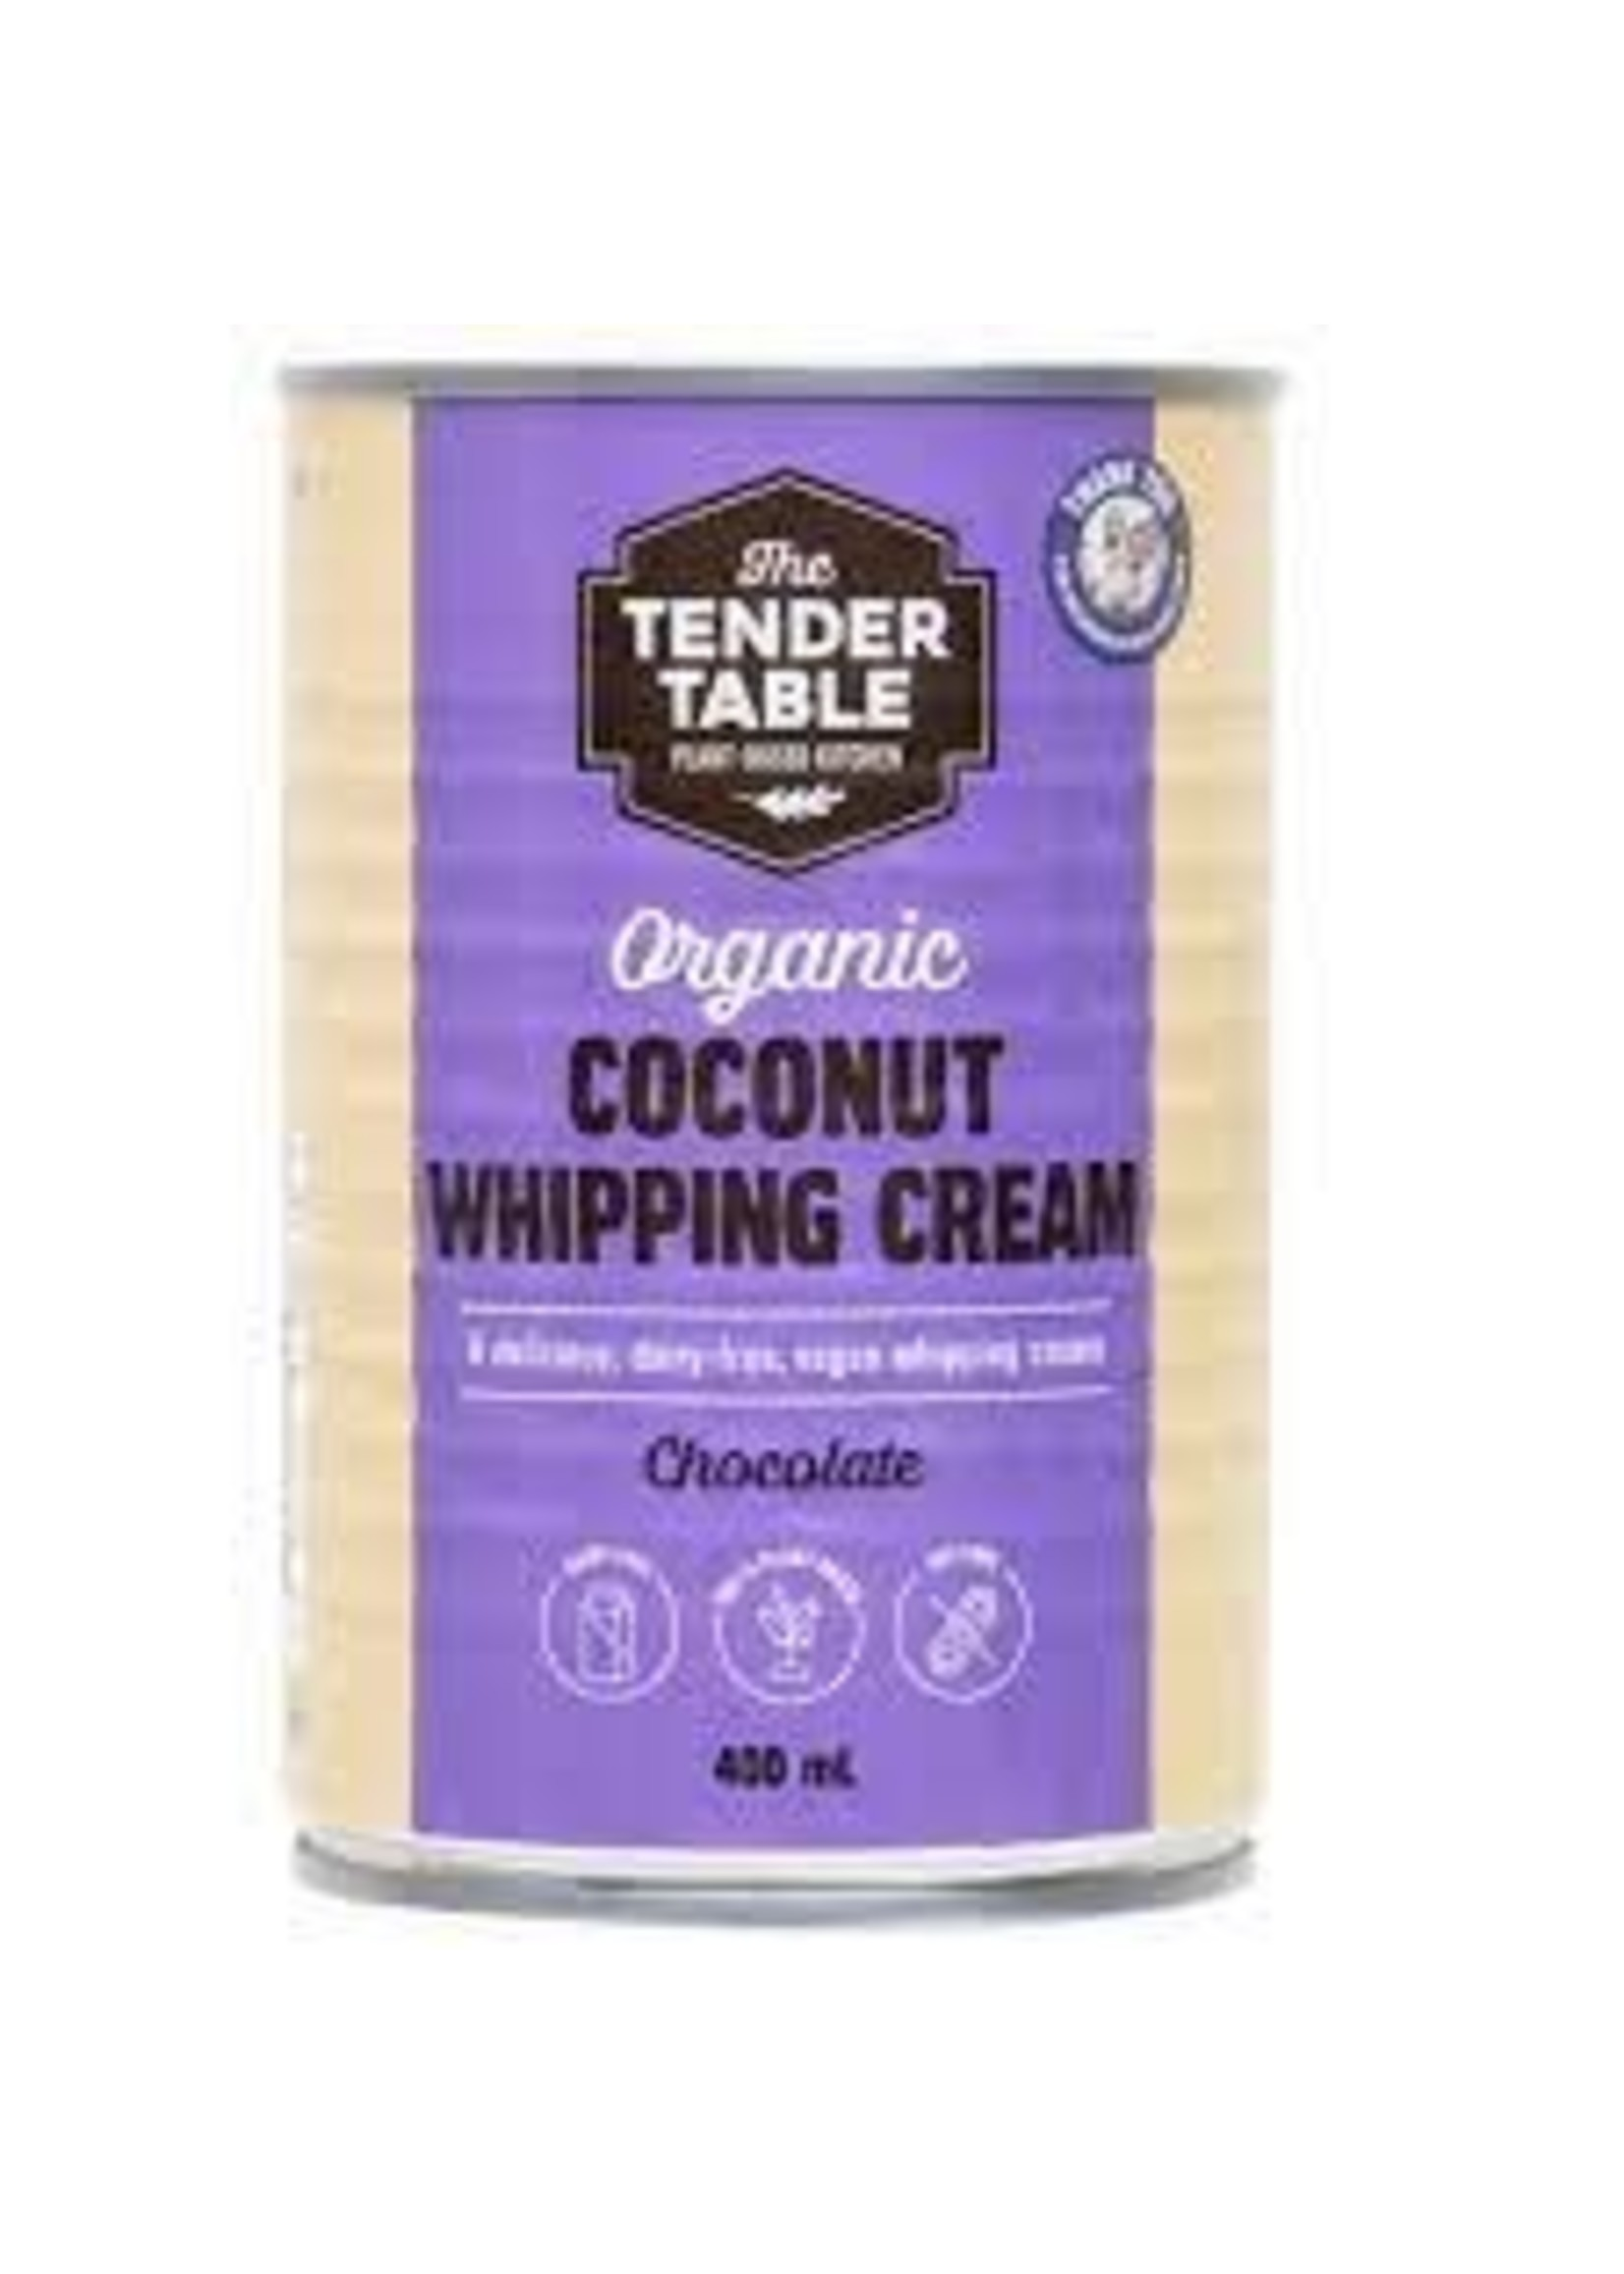 The tender table The Tender Table Organic Coconut Whipping Cream Chocolate 400ml